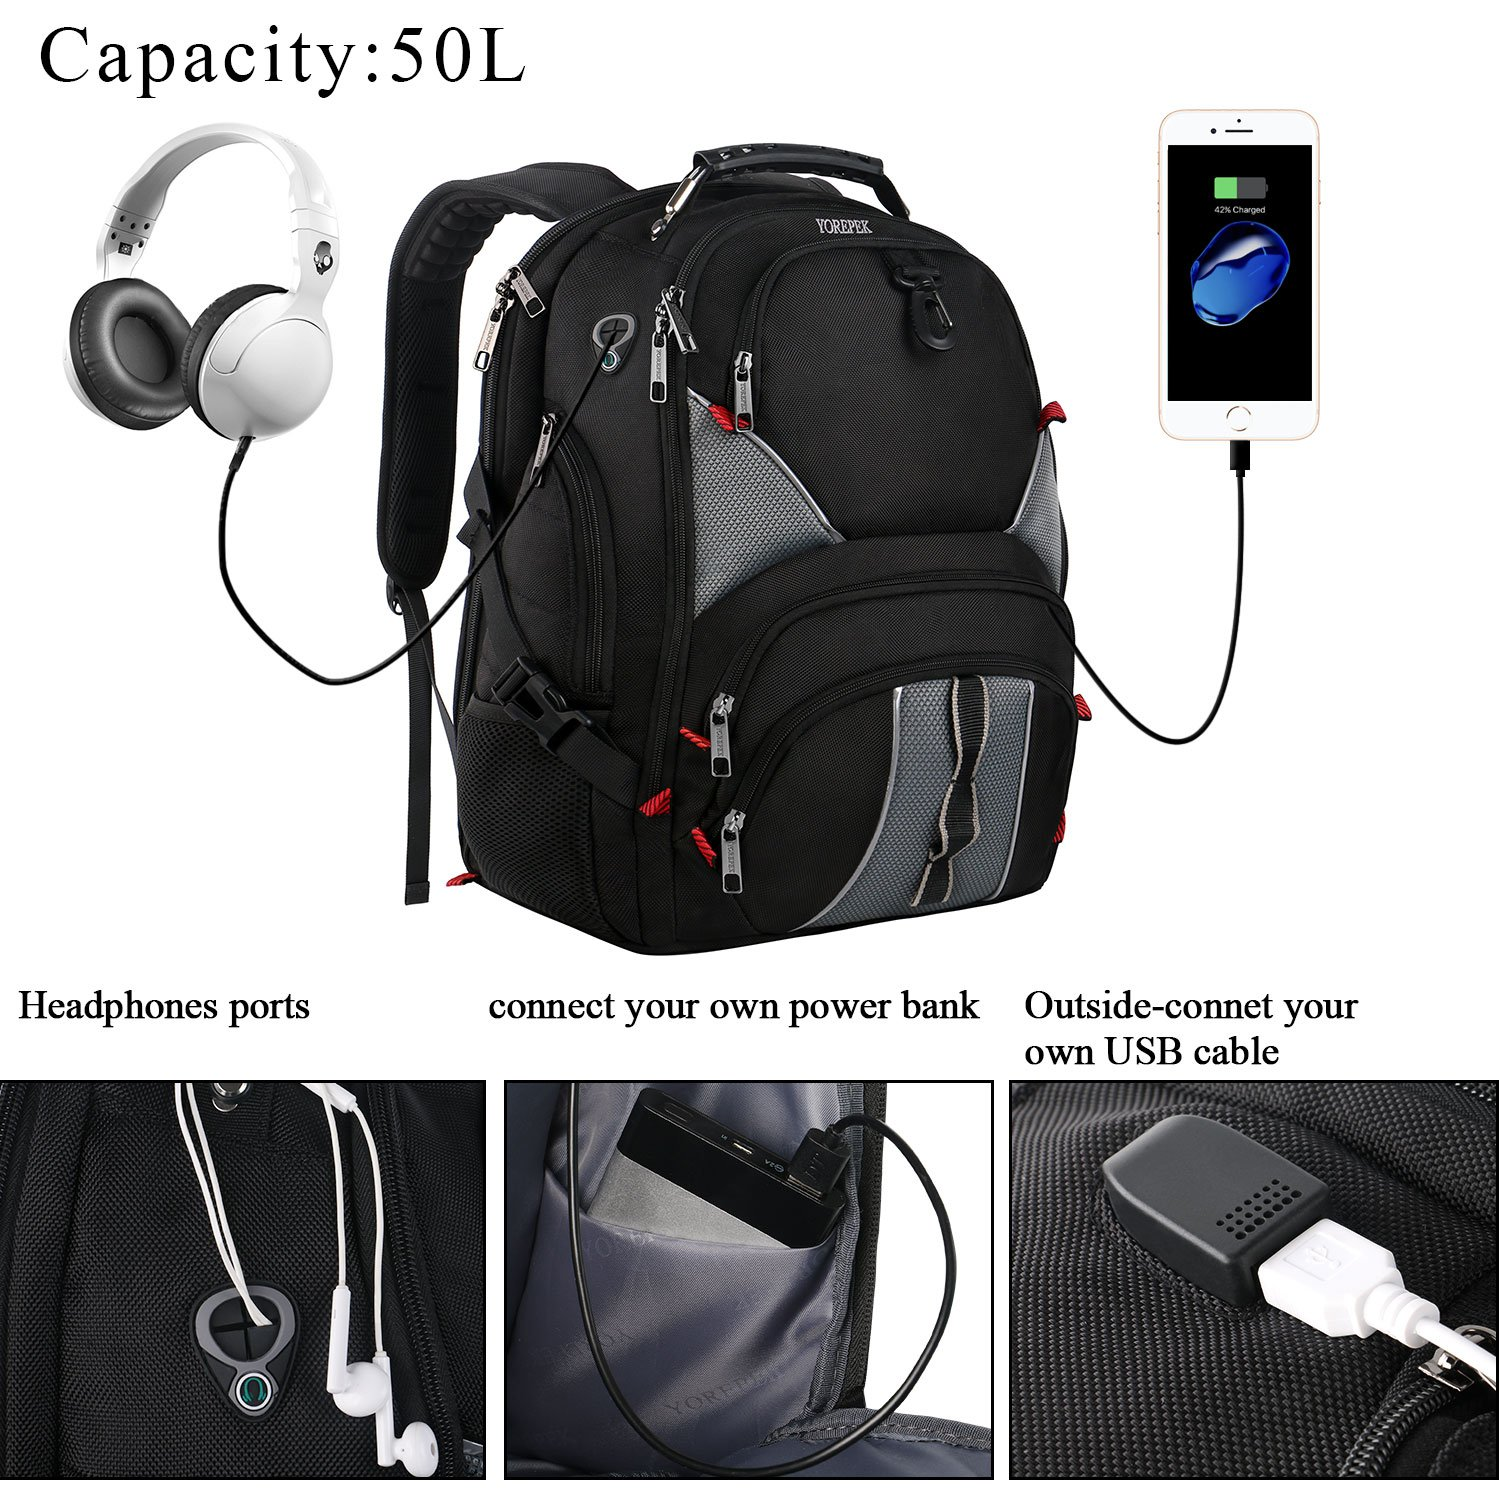 17 inch Laptop Backpack,Large Travel Backpack,TSA Friendly Durable Computer Bagpack with Luggage Sleeve for Men Women, Water Resistant Business College School Bag with USB Charger Port, Black by YOREPEK (Image #3)